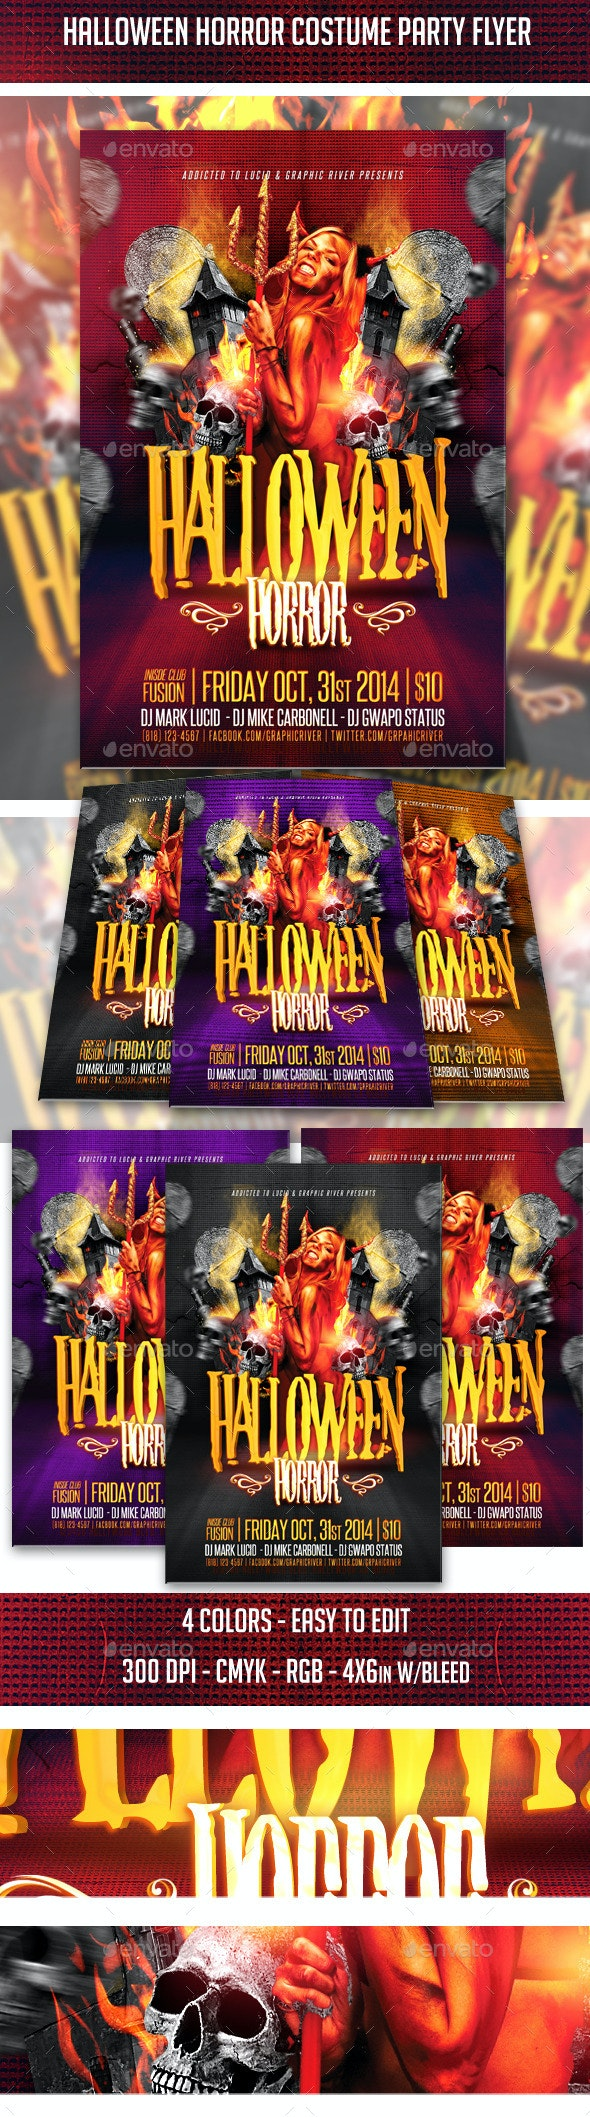 Halloween Horror Costume Party Flyer - Clubs & Parties Events